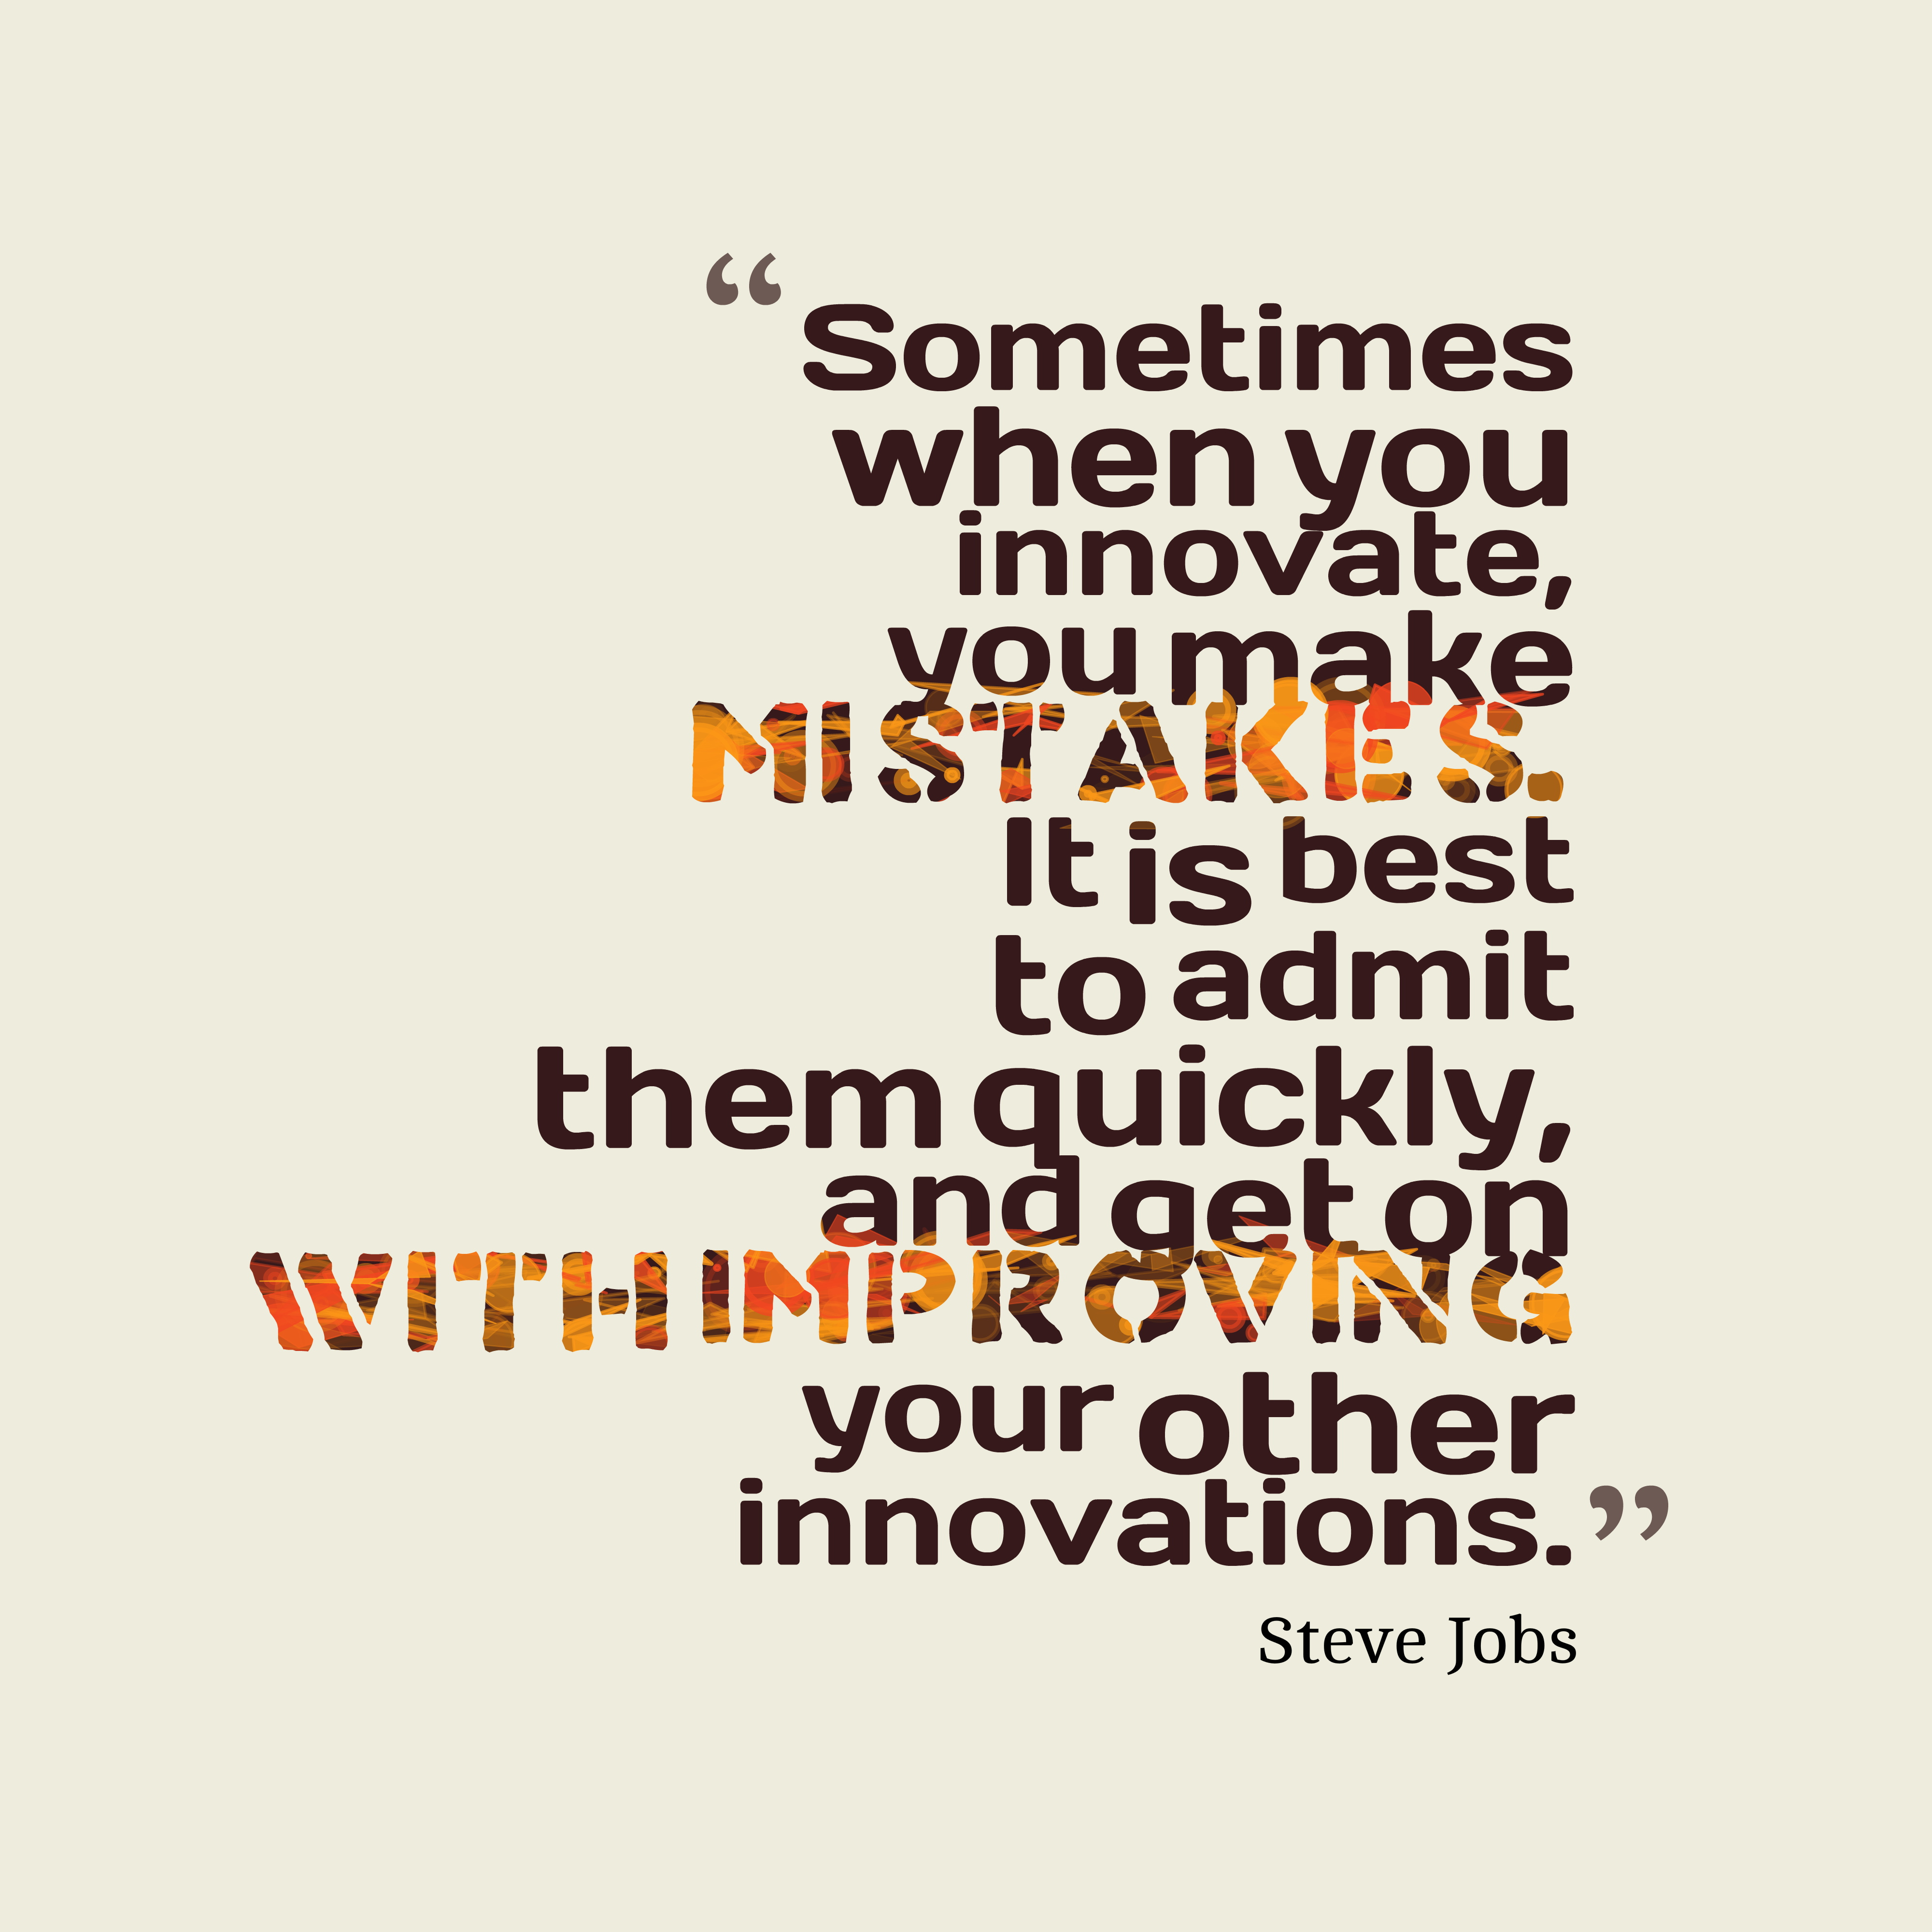 Quotes image of Sometimes when you innovate, you make mistakes. It is best to admit them quickly, and get on with improving your other innovations.